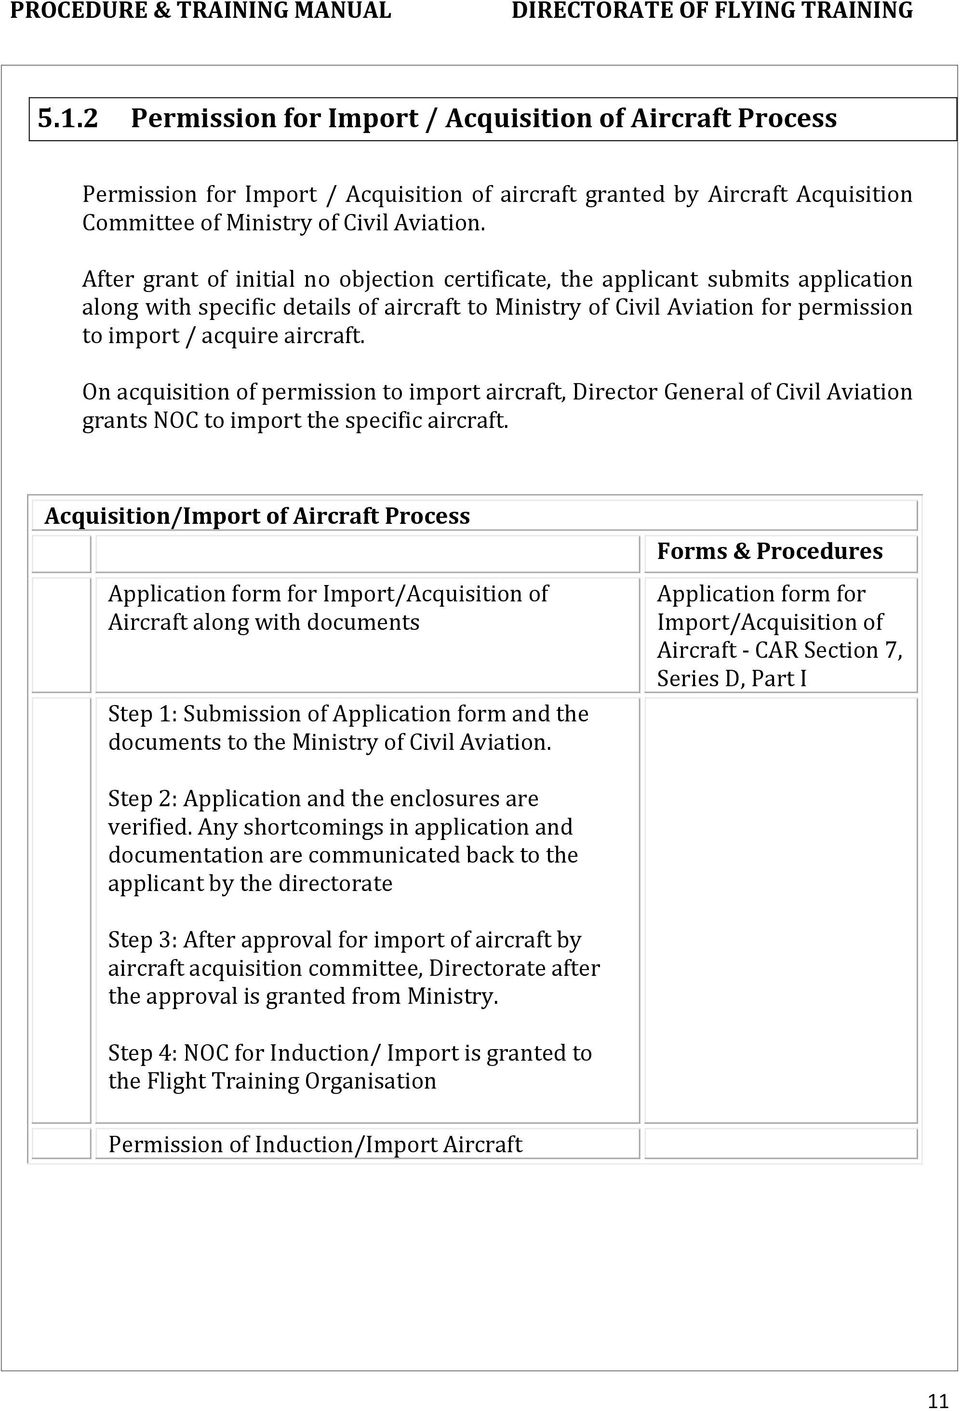 On acquisition of permission to import aircraft, Director General of Civil Aviation grants NOC to import the specific aircraft.